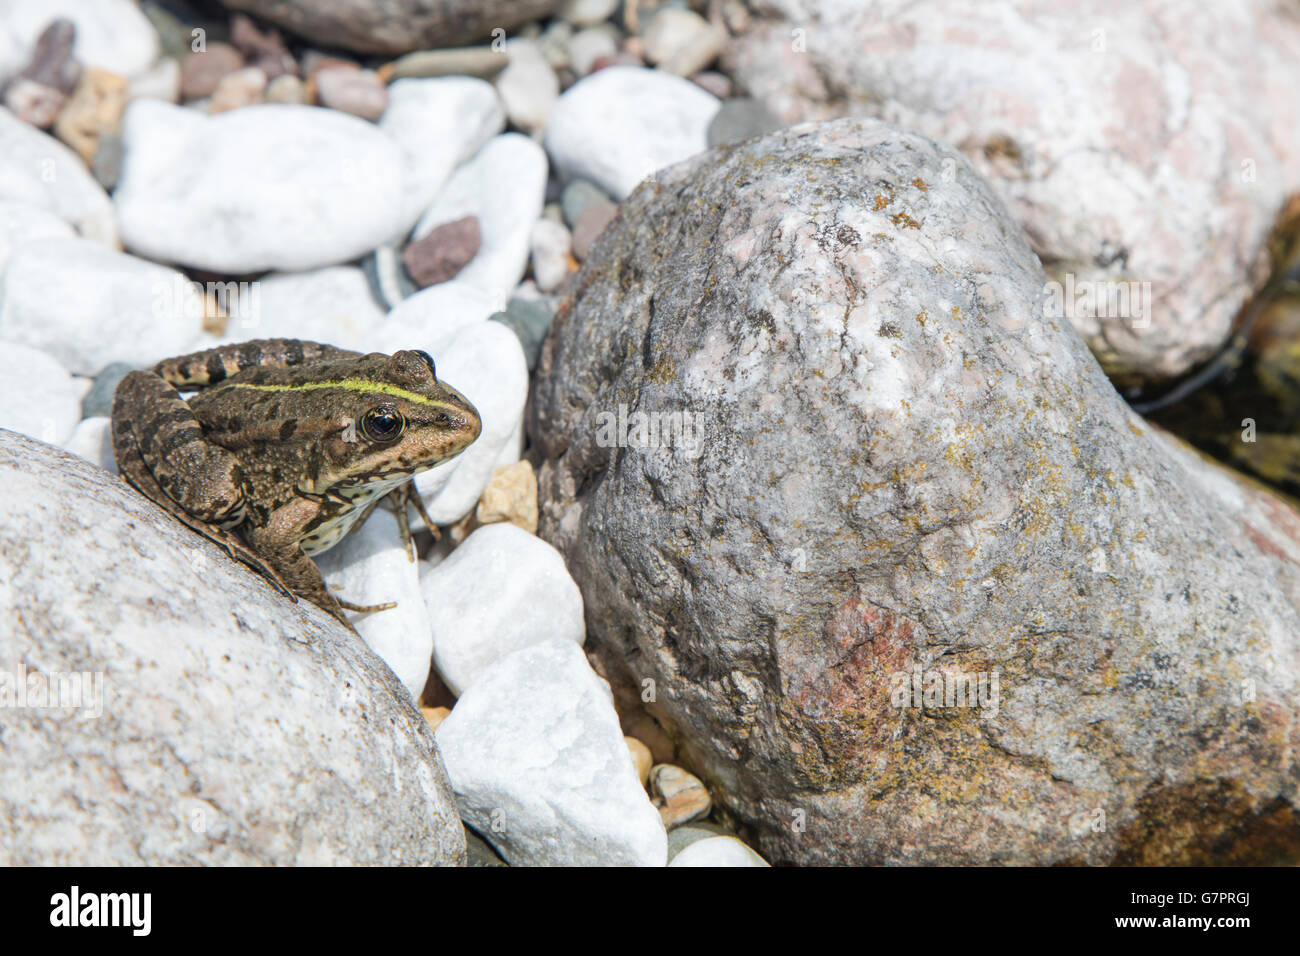 Detail of european frog on a rounded river stone on a sunny day - Stock Image